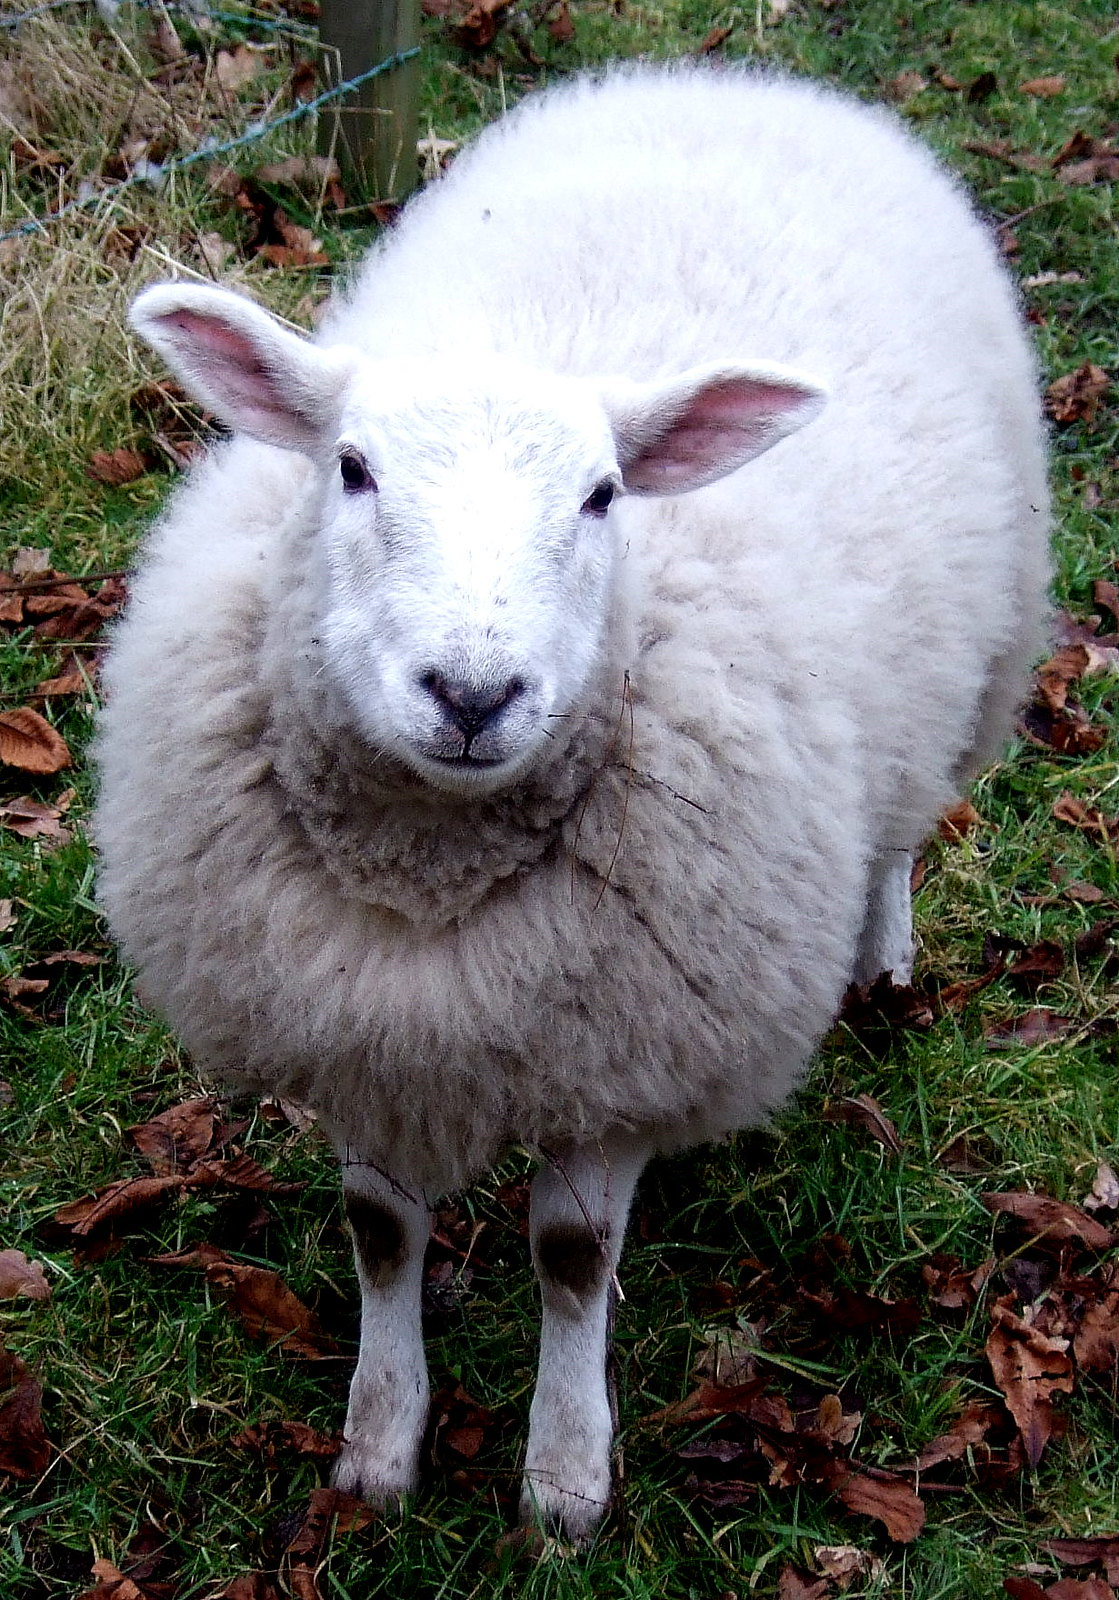 White wooly sheep